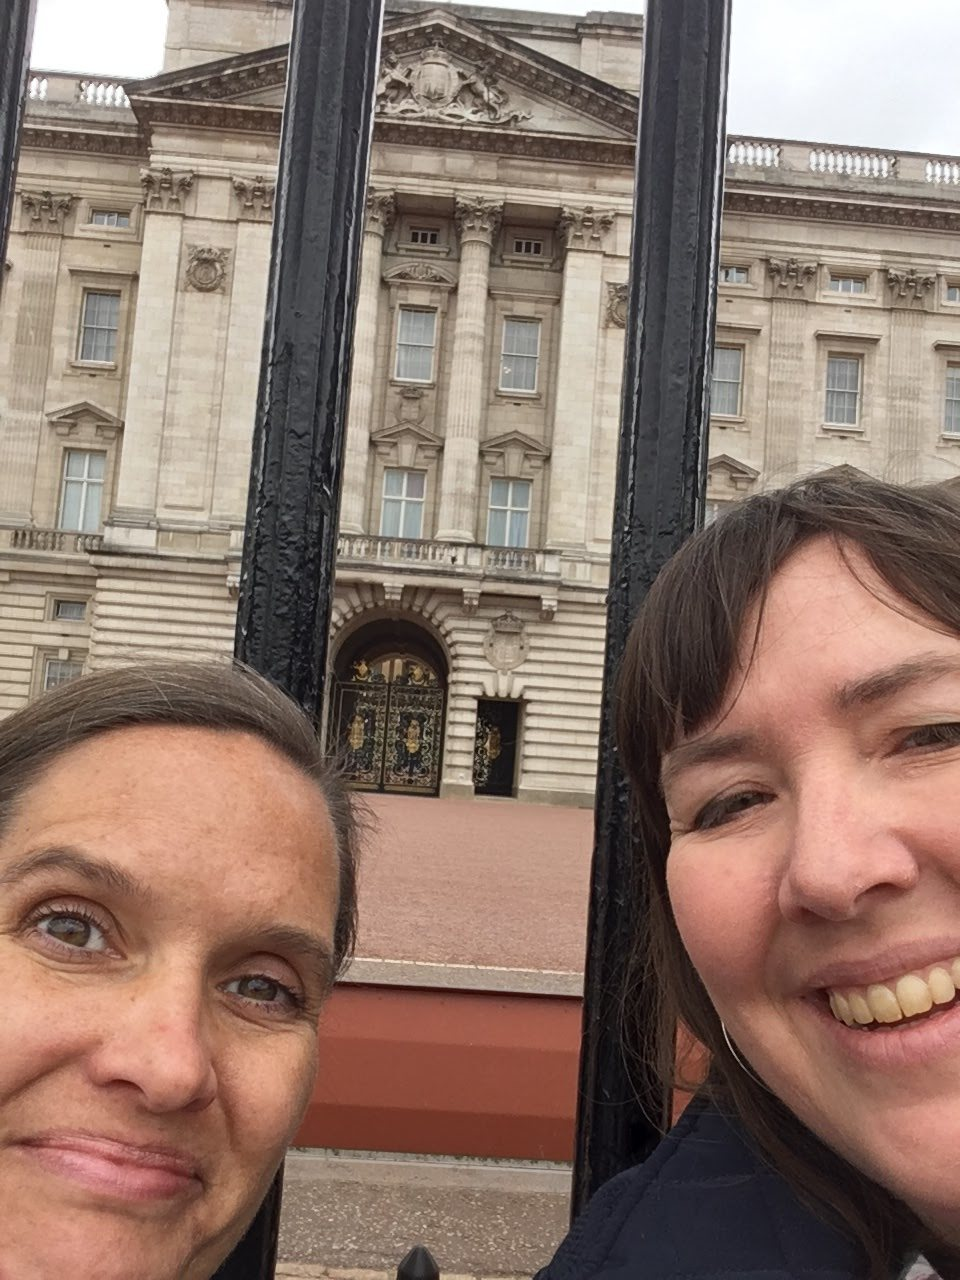 Buckingham Palace!!!! (The Queen didn't feel like taking a selfie with us.  Maybe next time.)